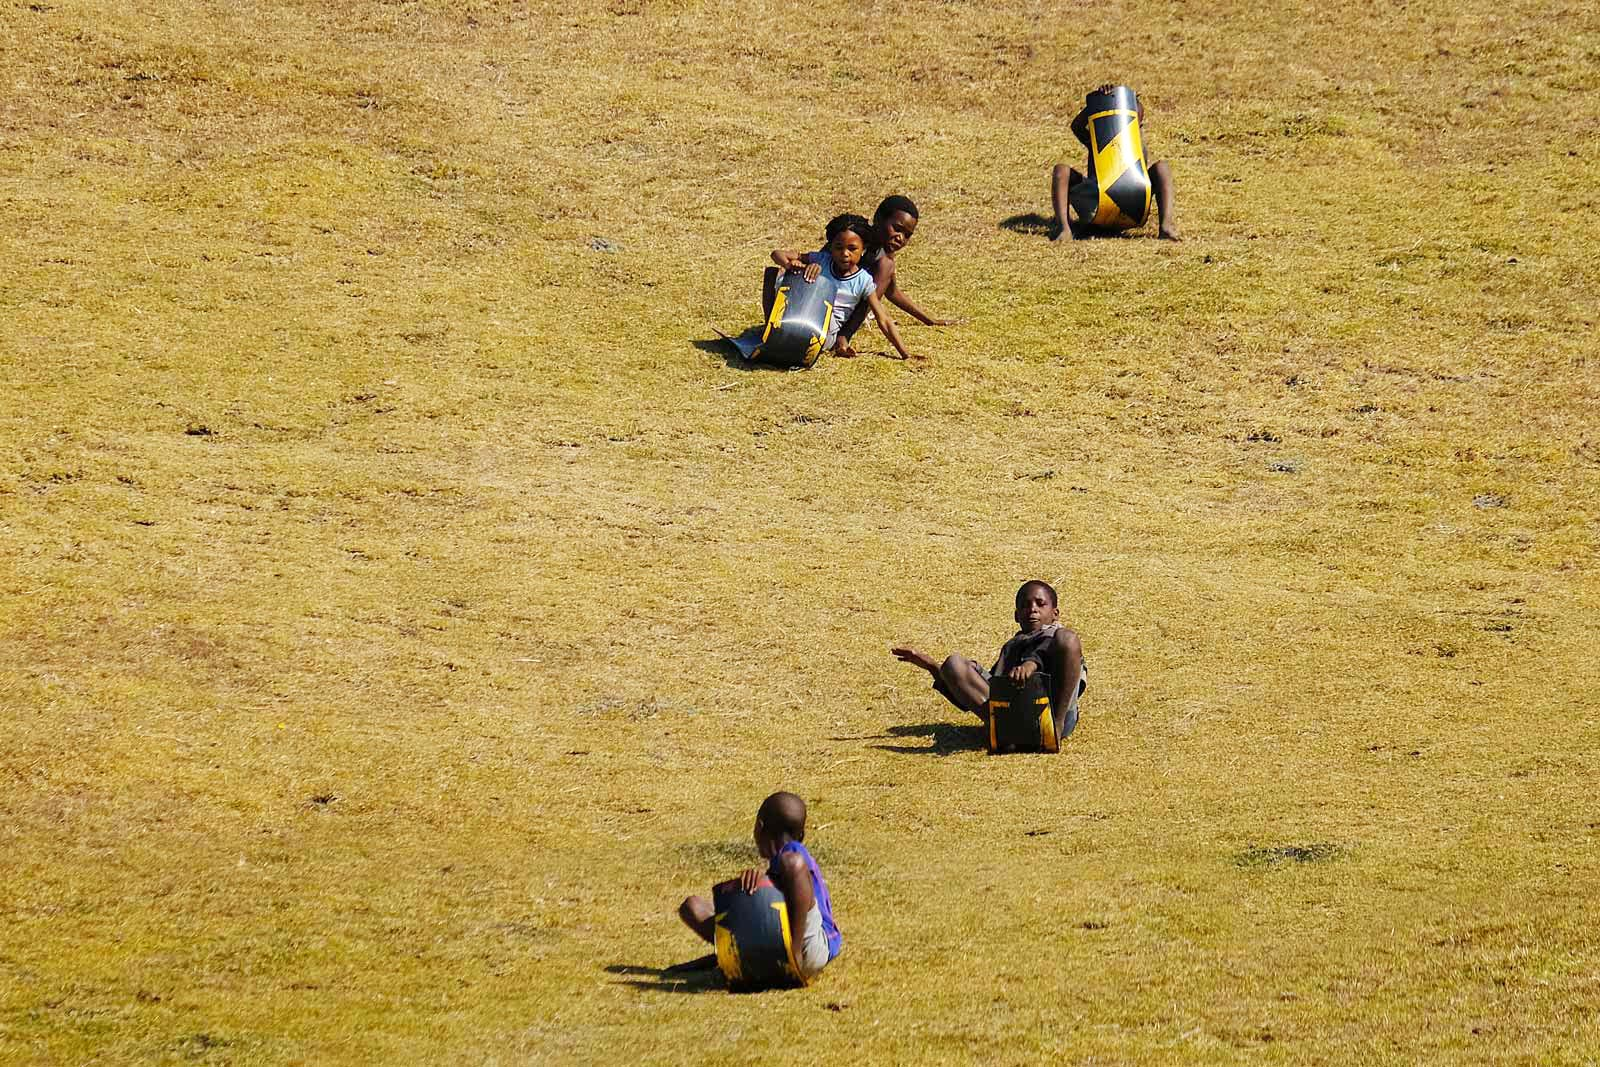 Children at Coffee Bay sledging down the grassy hills